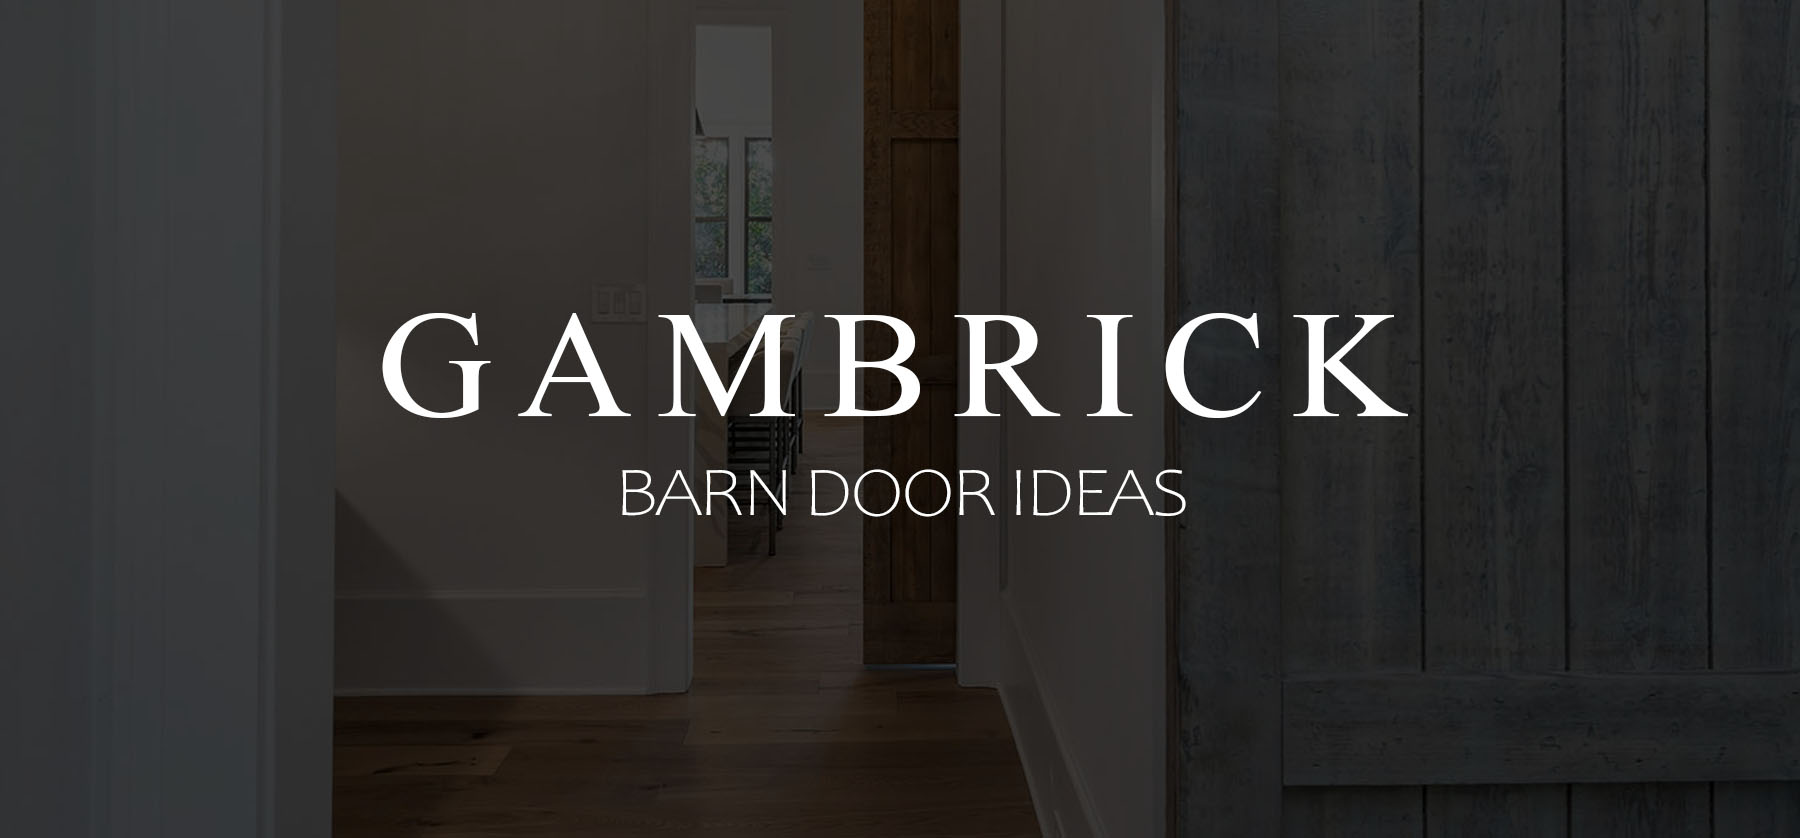 barn door ideas banner pic